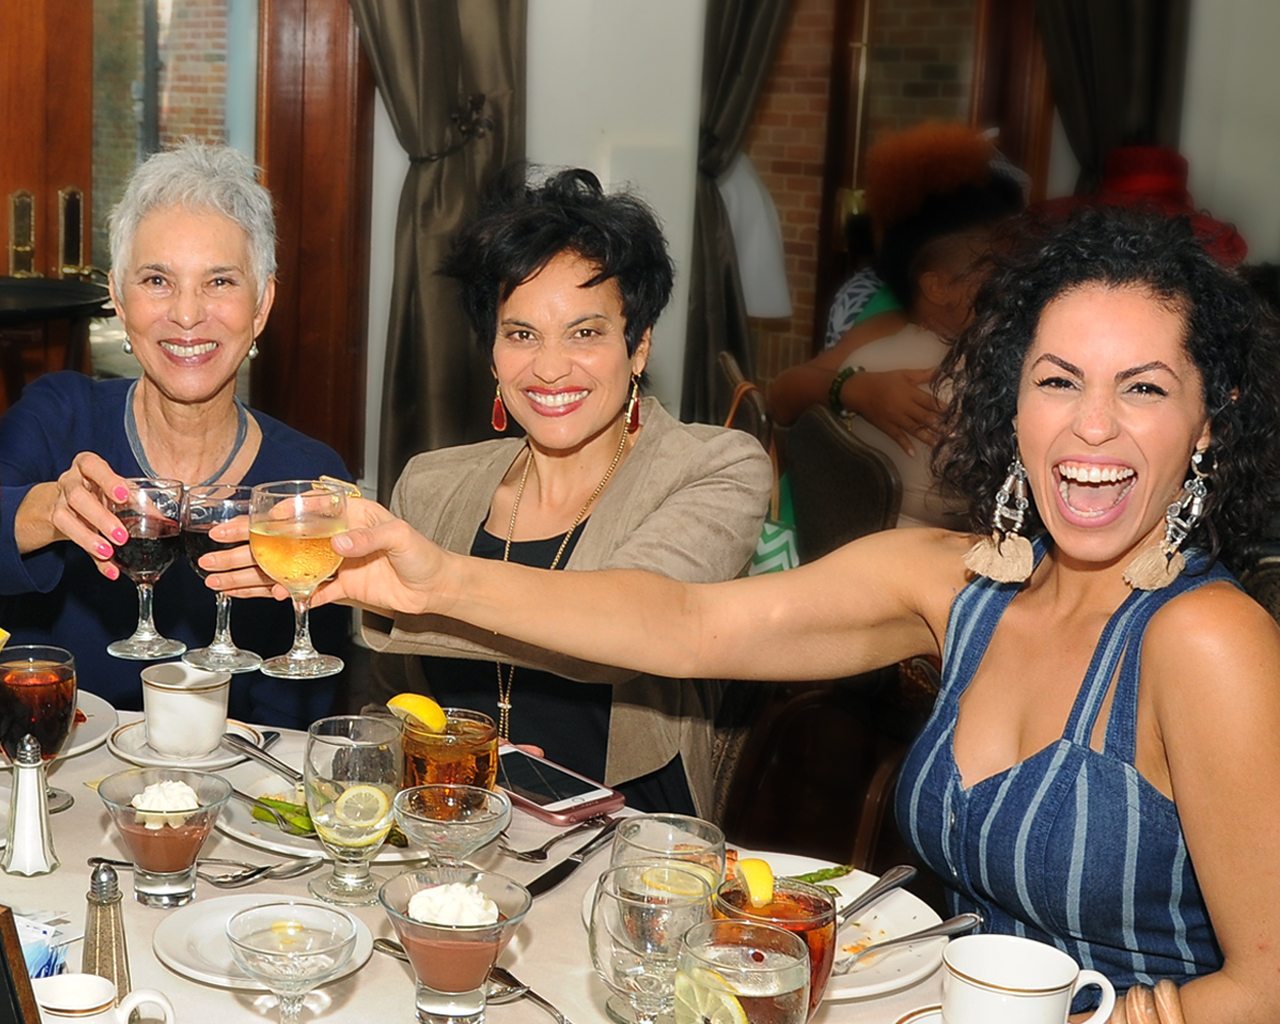 3 ladies raise wine glasses and toast while attending Audubon Zoo's Mother's Day event.